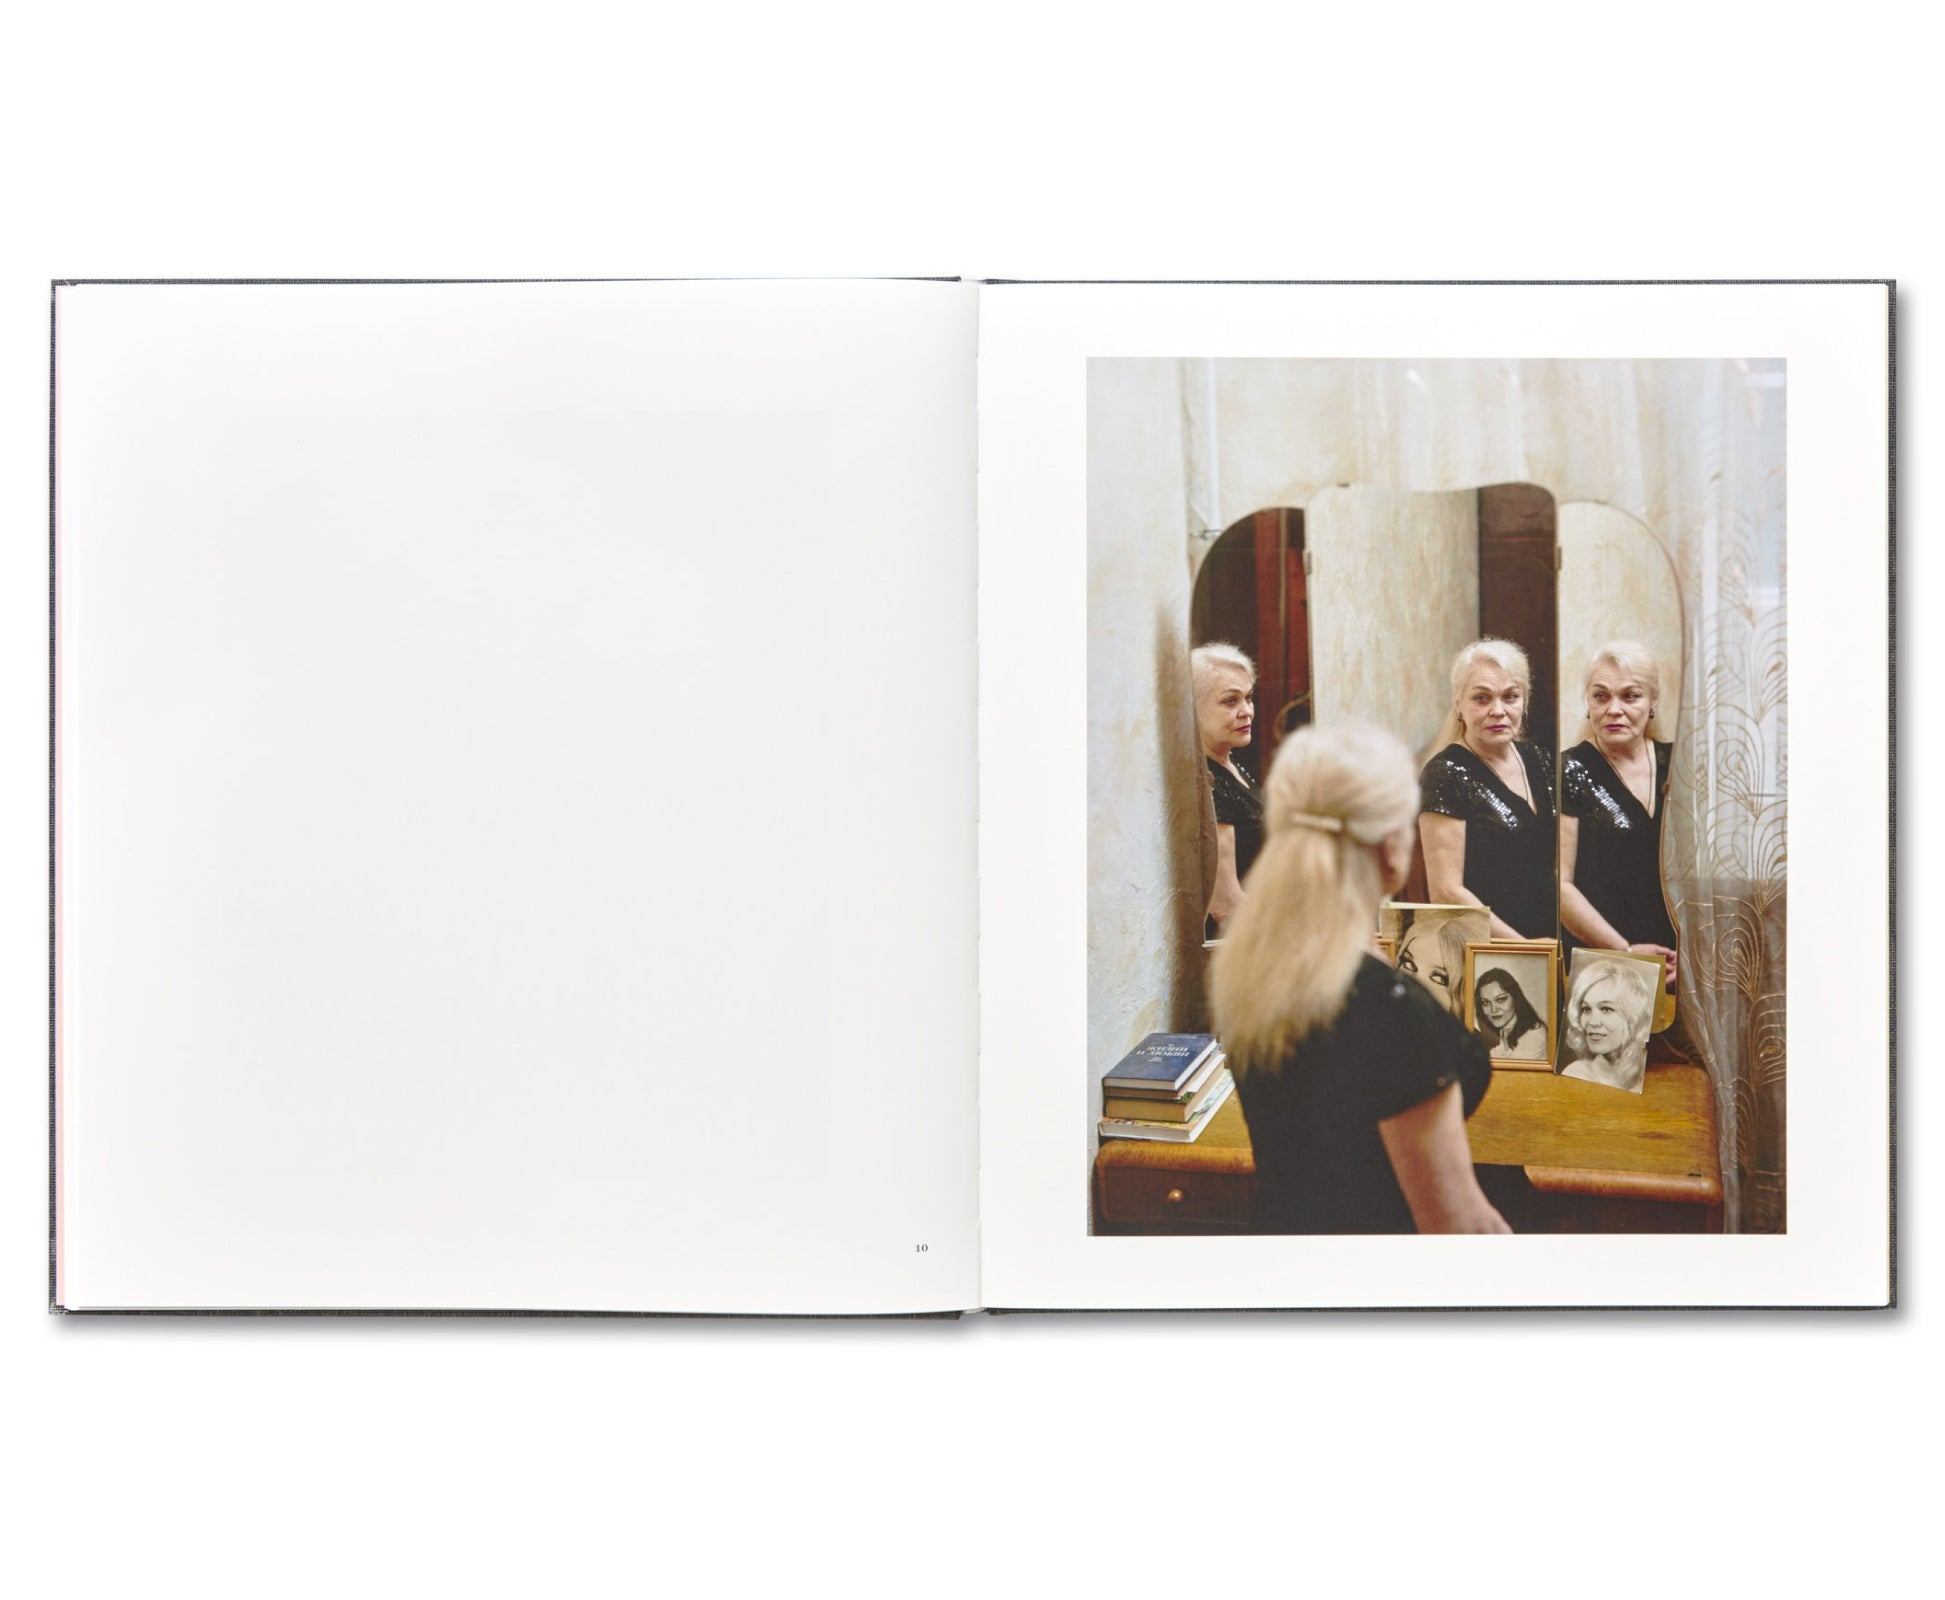 I KNOW HOW FURIOUSLY YOUR HEART IS BEATING by Alec Soth [SPECIAL EDITION (A)]